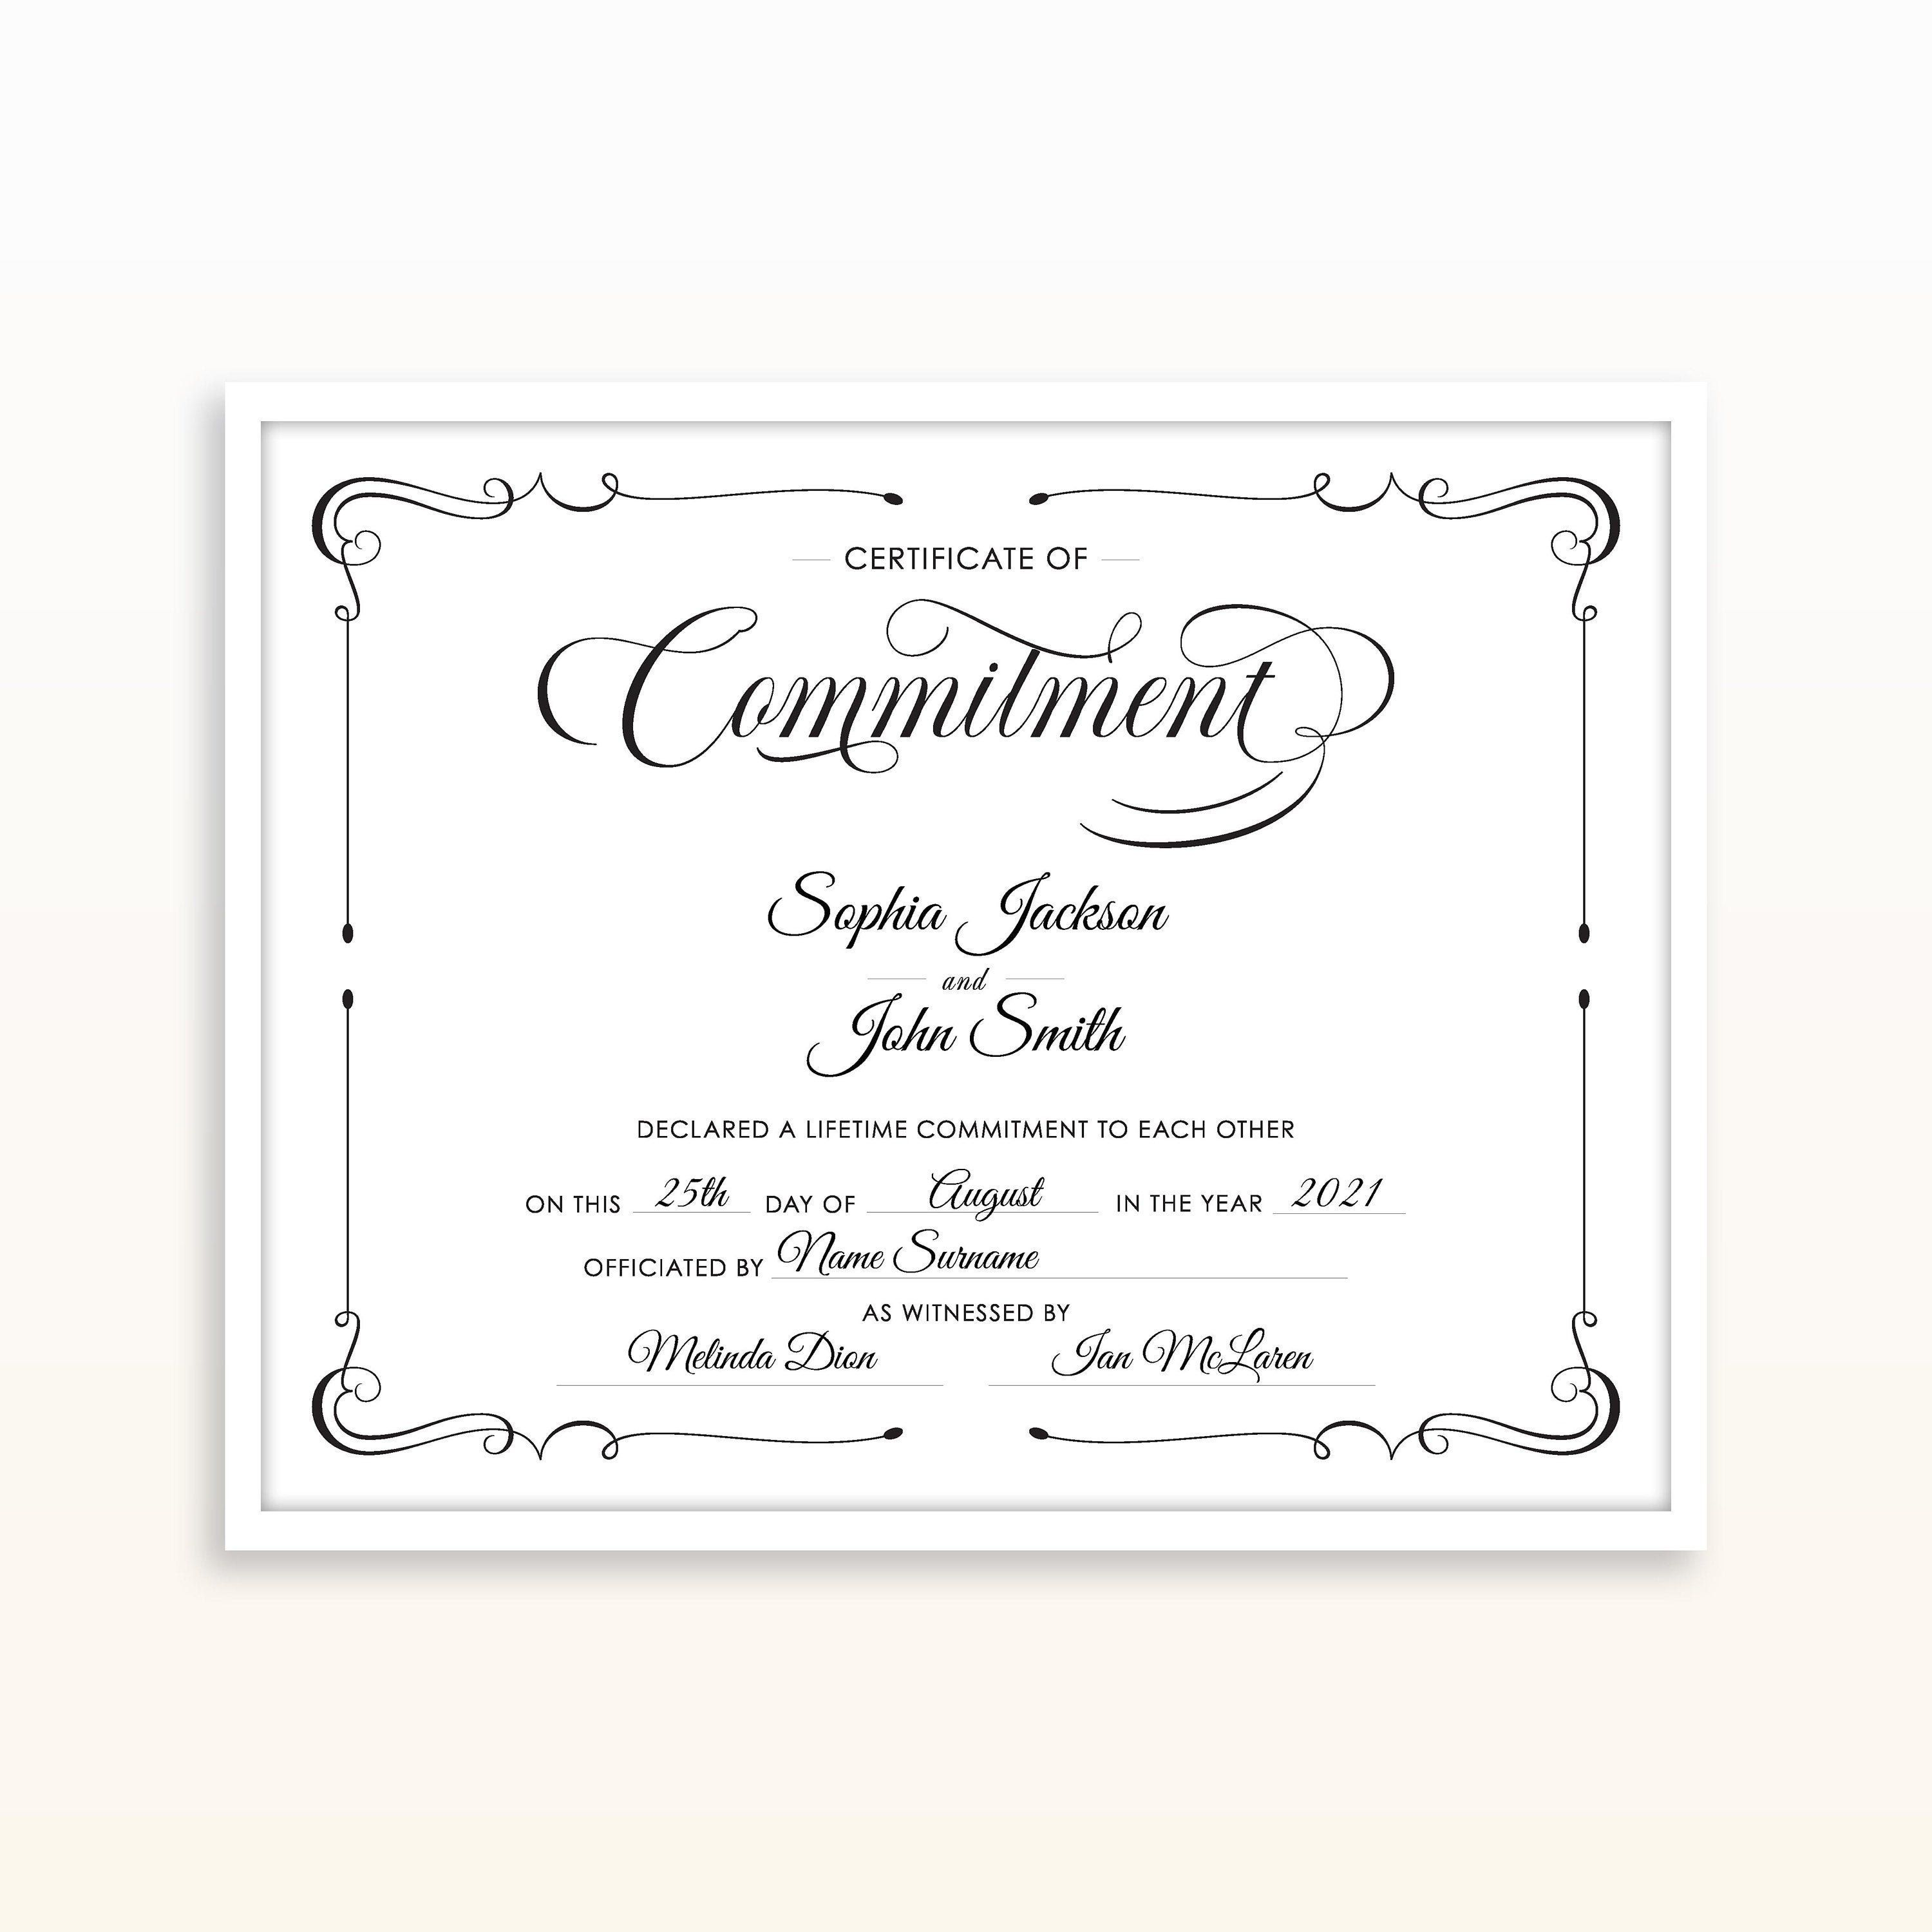 002 Awesome Certificate Of Marriage Template Concept  Word AustraliaFull